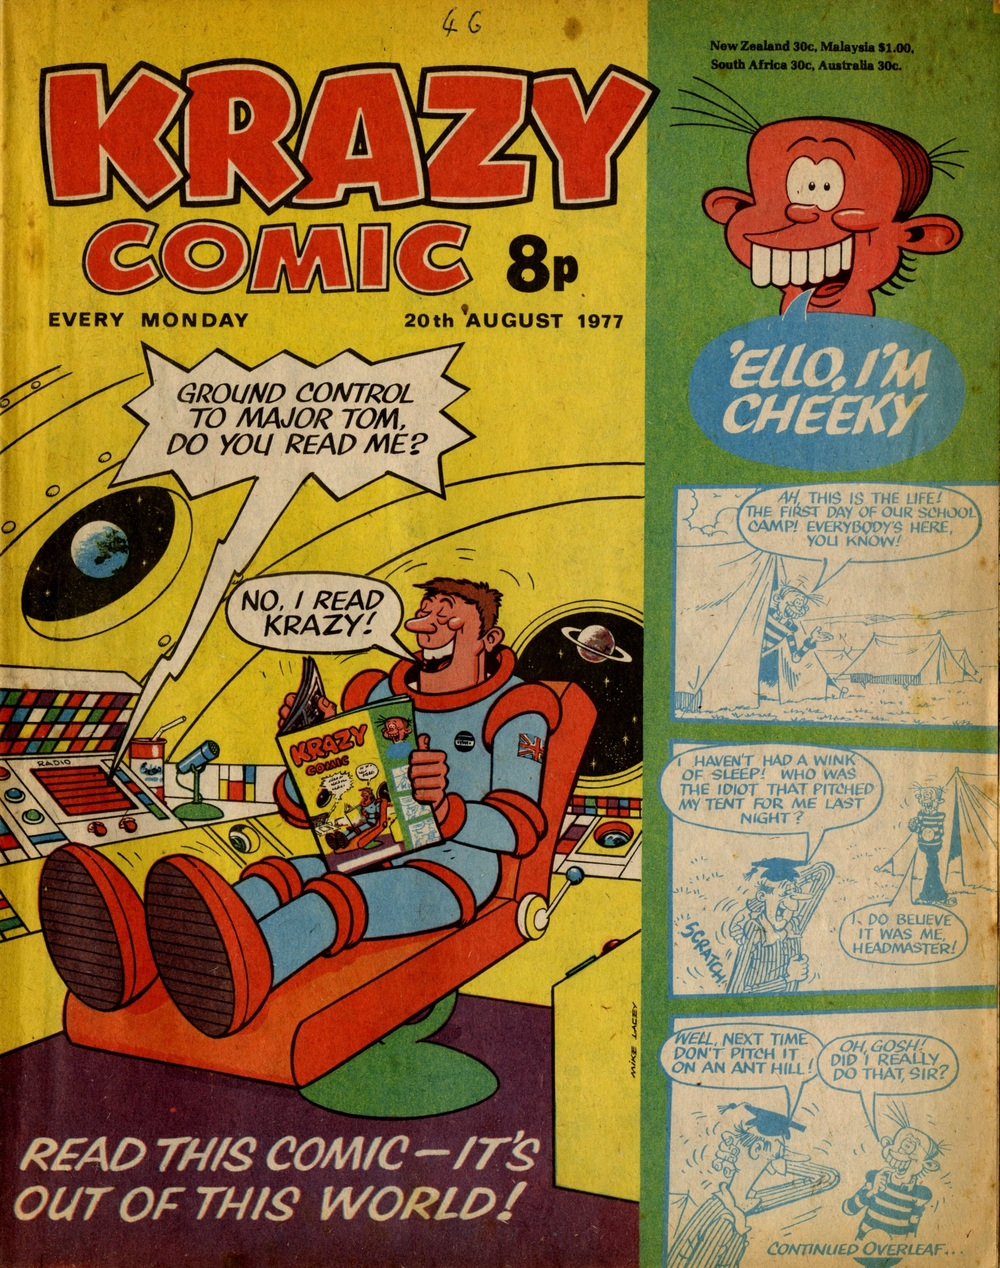 20 August 1977: Krazy (Mike Lacey (artist))